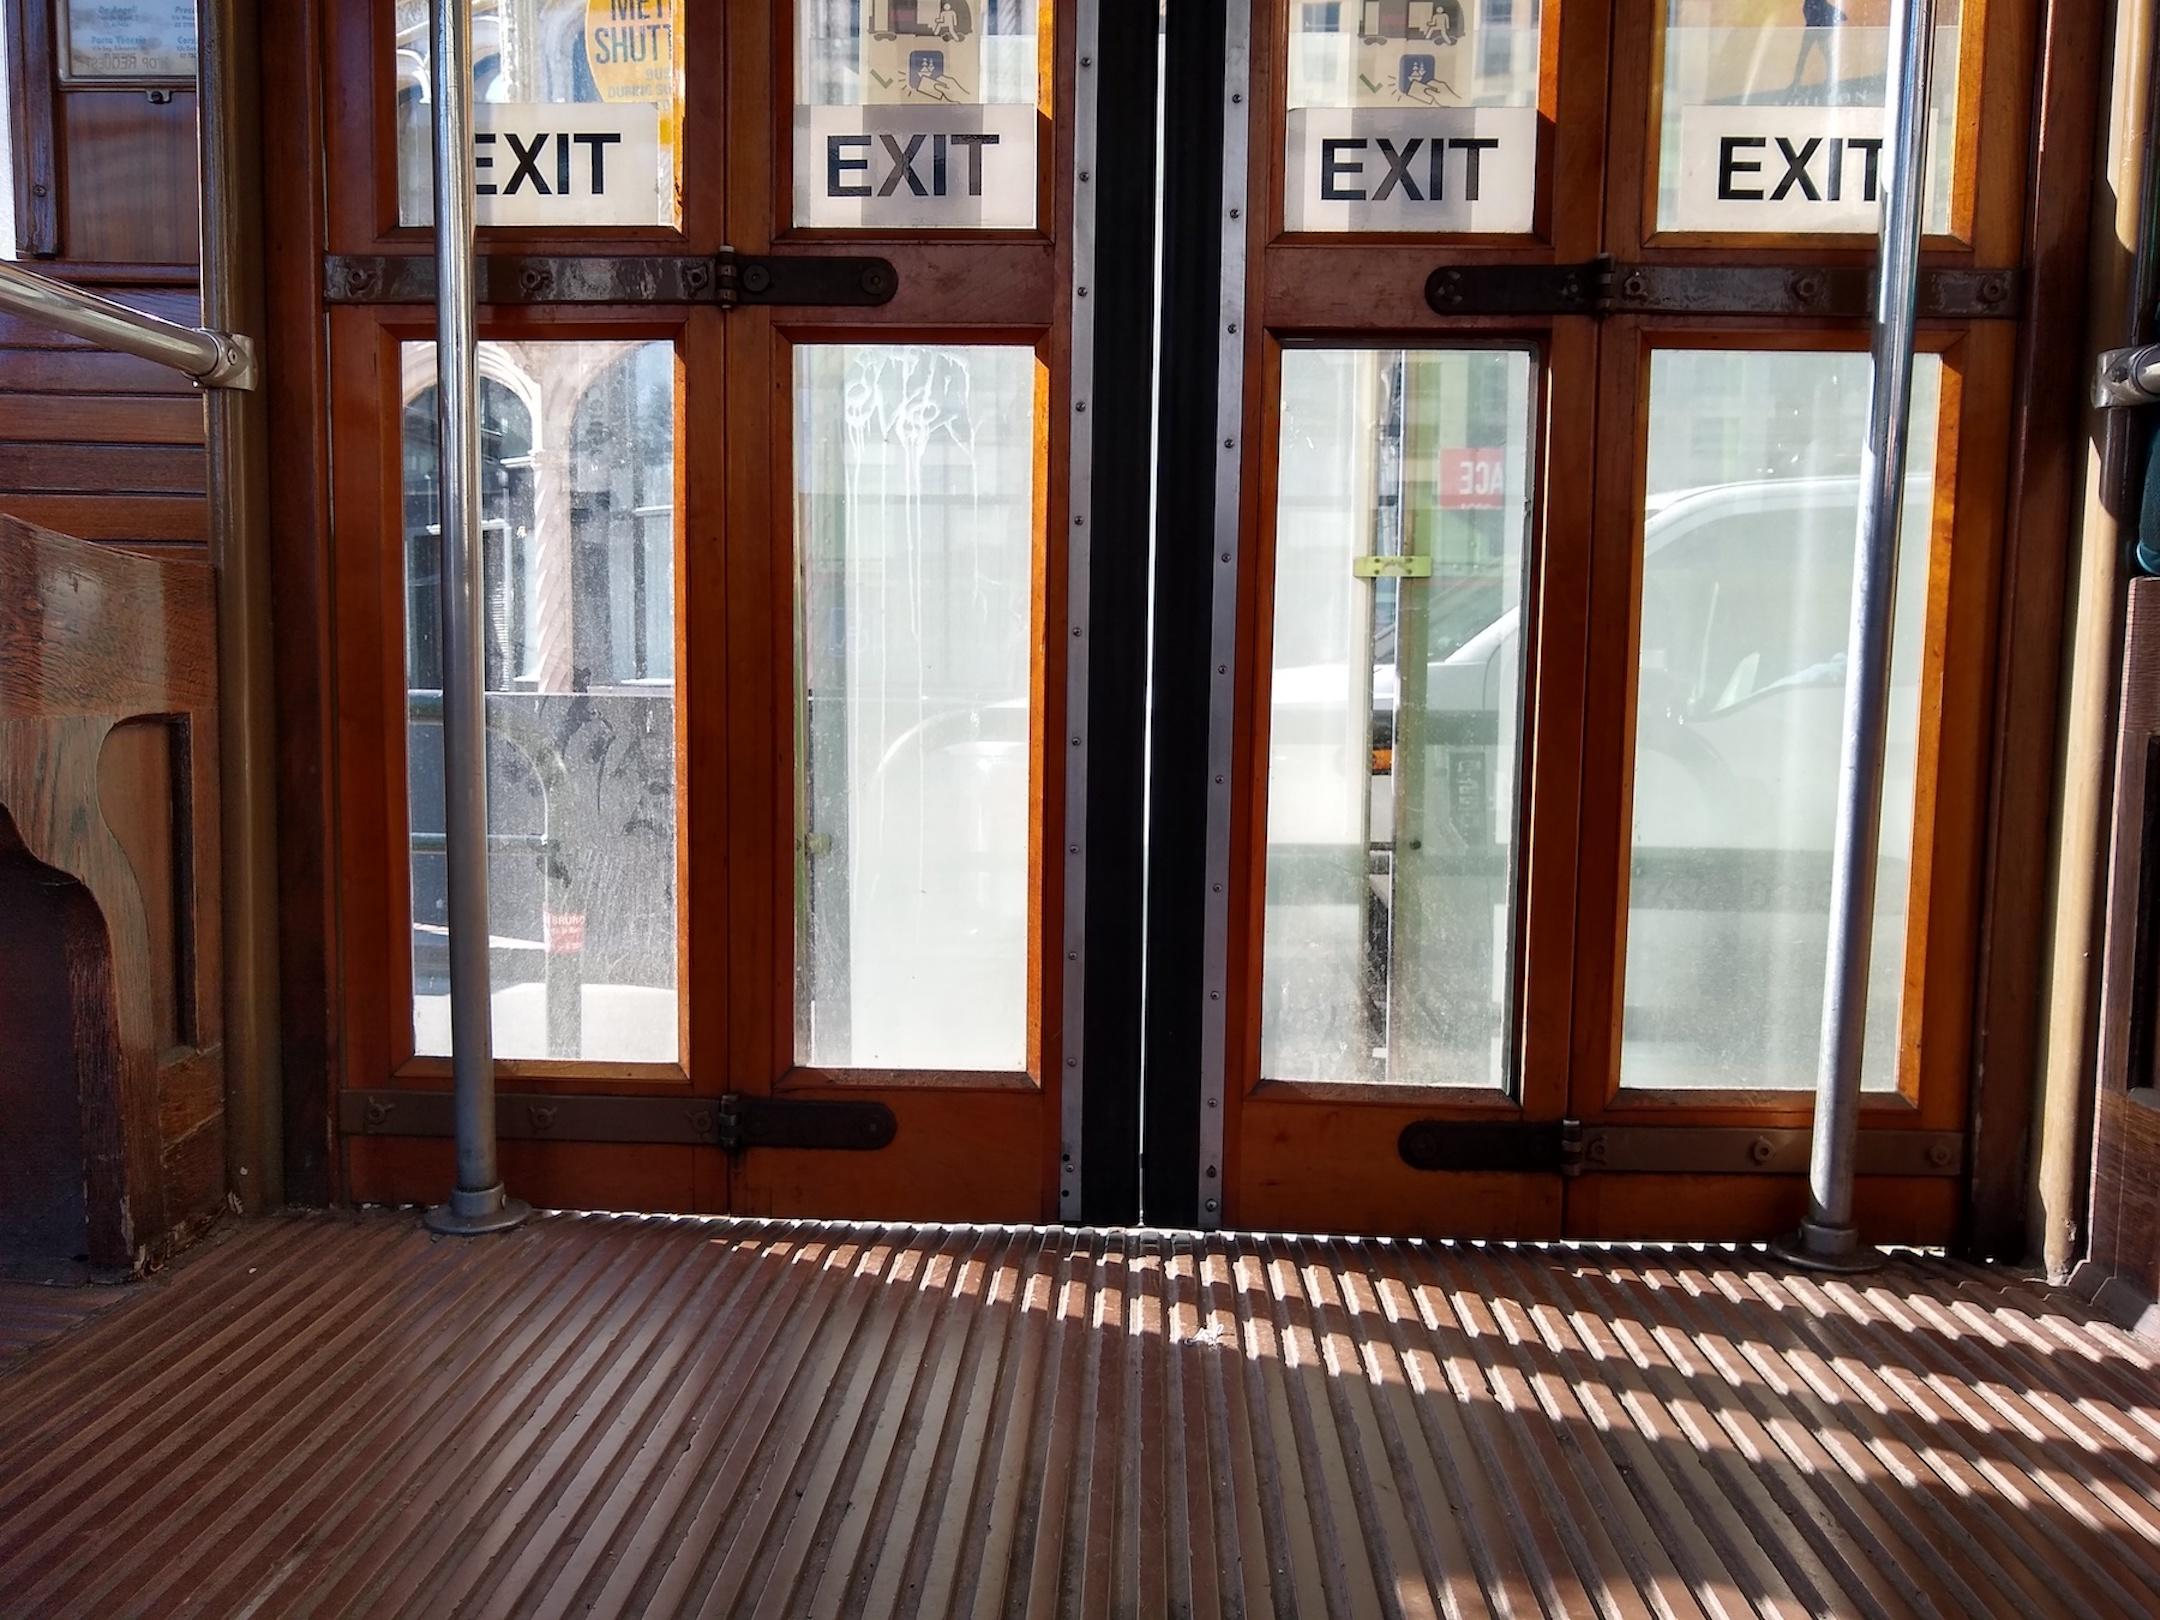 small-good-photo-exit-doors